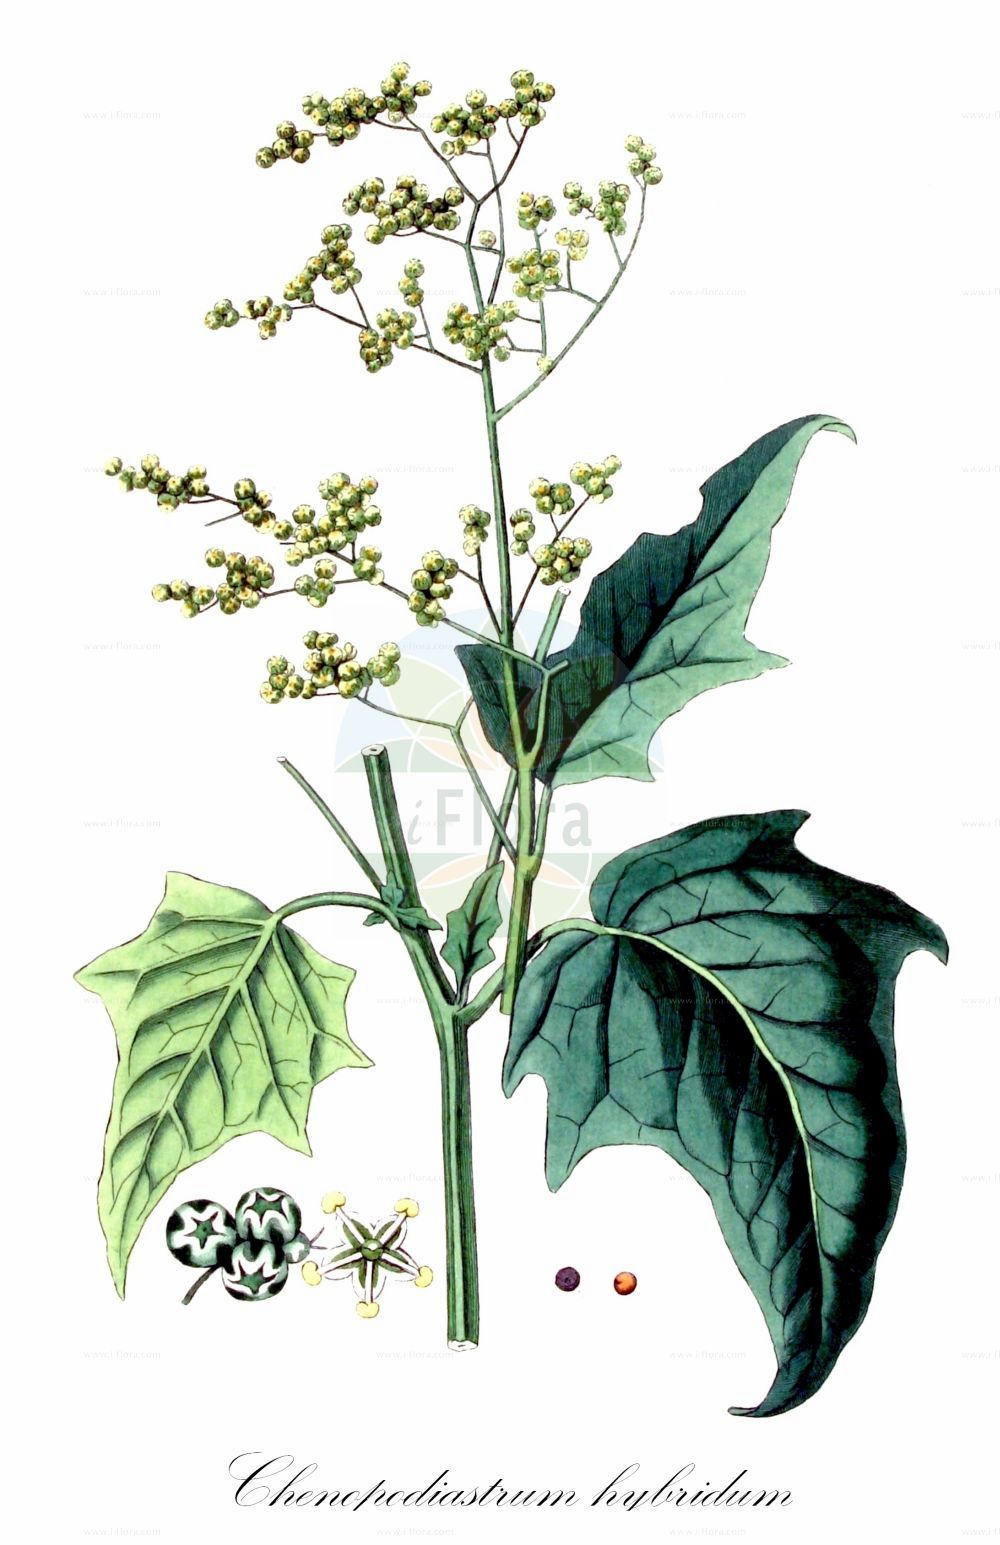 Historische Abbildung von Chenopodiastrum hybridum (Breitblaettriger Gaensefuss - Maple-leaved Goosefoot). Das Bild zeigt Blatt, Bluete, Frucht und Same. ---- Historical Drawing of Chenopodiastrum hybridum (Breitblaettriger Gaensefuss - Maple-leaved Goosefoot).The image is showing leaf, flower, fruit and seed.(Chenopodiastrum hybridum,Breitblaettriger Gaensefuss,Maple-leaved Goosefoot,Chenopodium angulosum,Chenopodium hybridum,Bastard-Gaensefuss,Sautod-Gaensefuss,Stechapfelblaettriger Gaensefuss,Bigseed Goosefoot,Maple-leaf Goosefoot,Sowbane,Chenopodiastrum,Amaranthaceae,Fuchsschwanzgewaechse,Pigweed family,Blatt,Bluete,Frucht,Same,leaf,flower,fruit,seed,Kops (1800-1934))